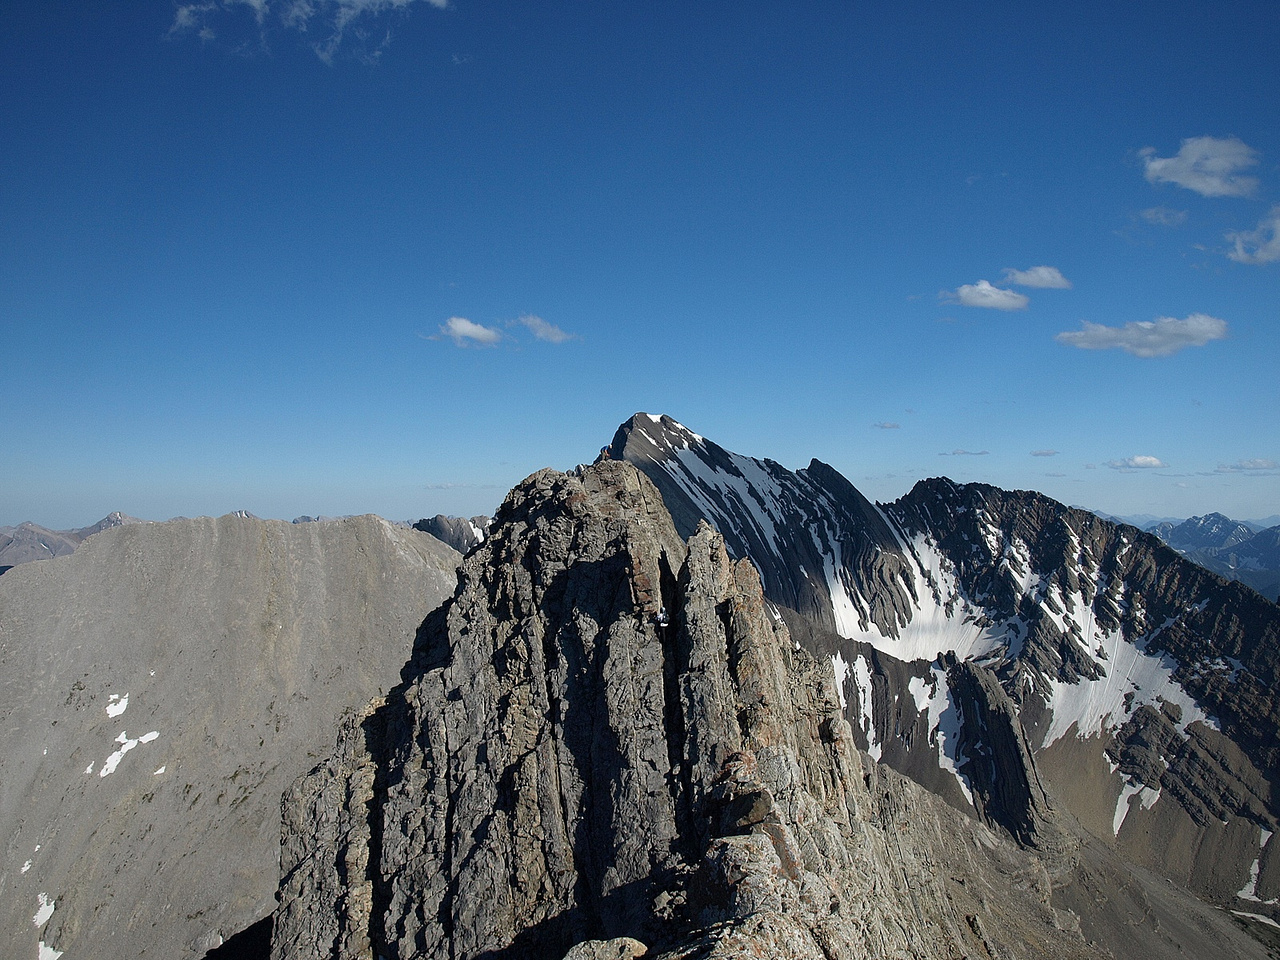 A slightly wider view of Kev on the crux down climb with Wietse above him on the ridge - definitely not easy terrain!